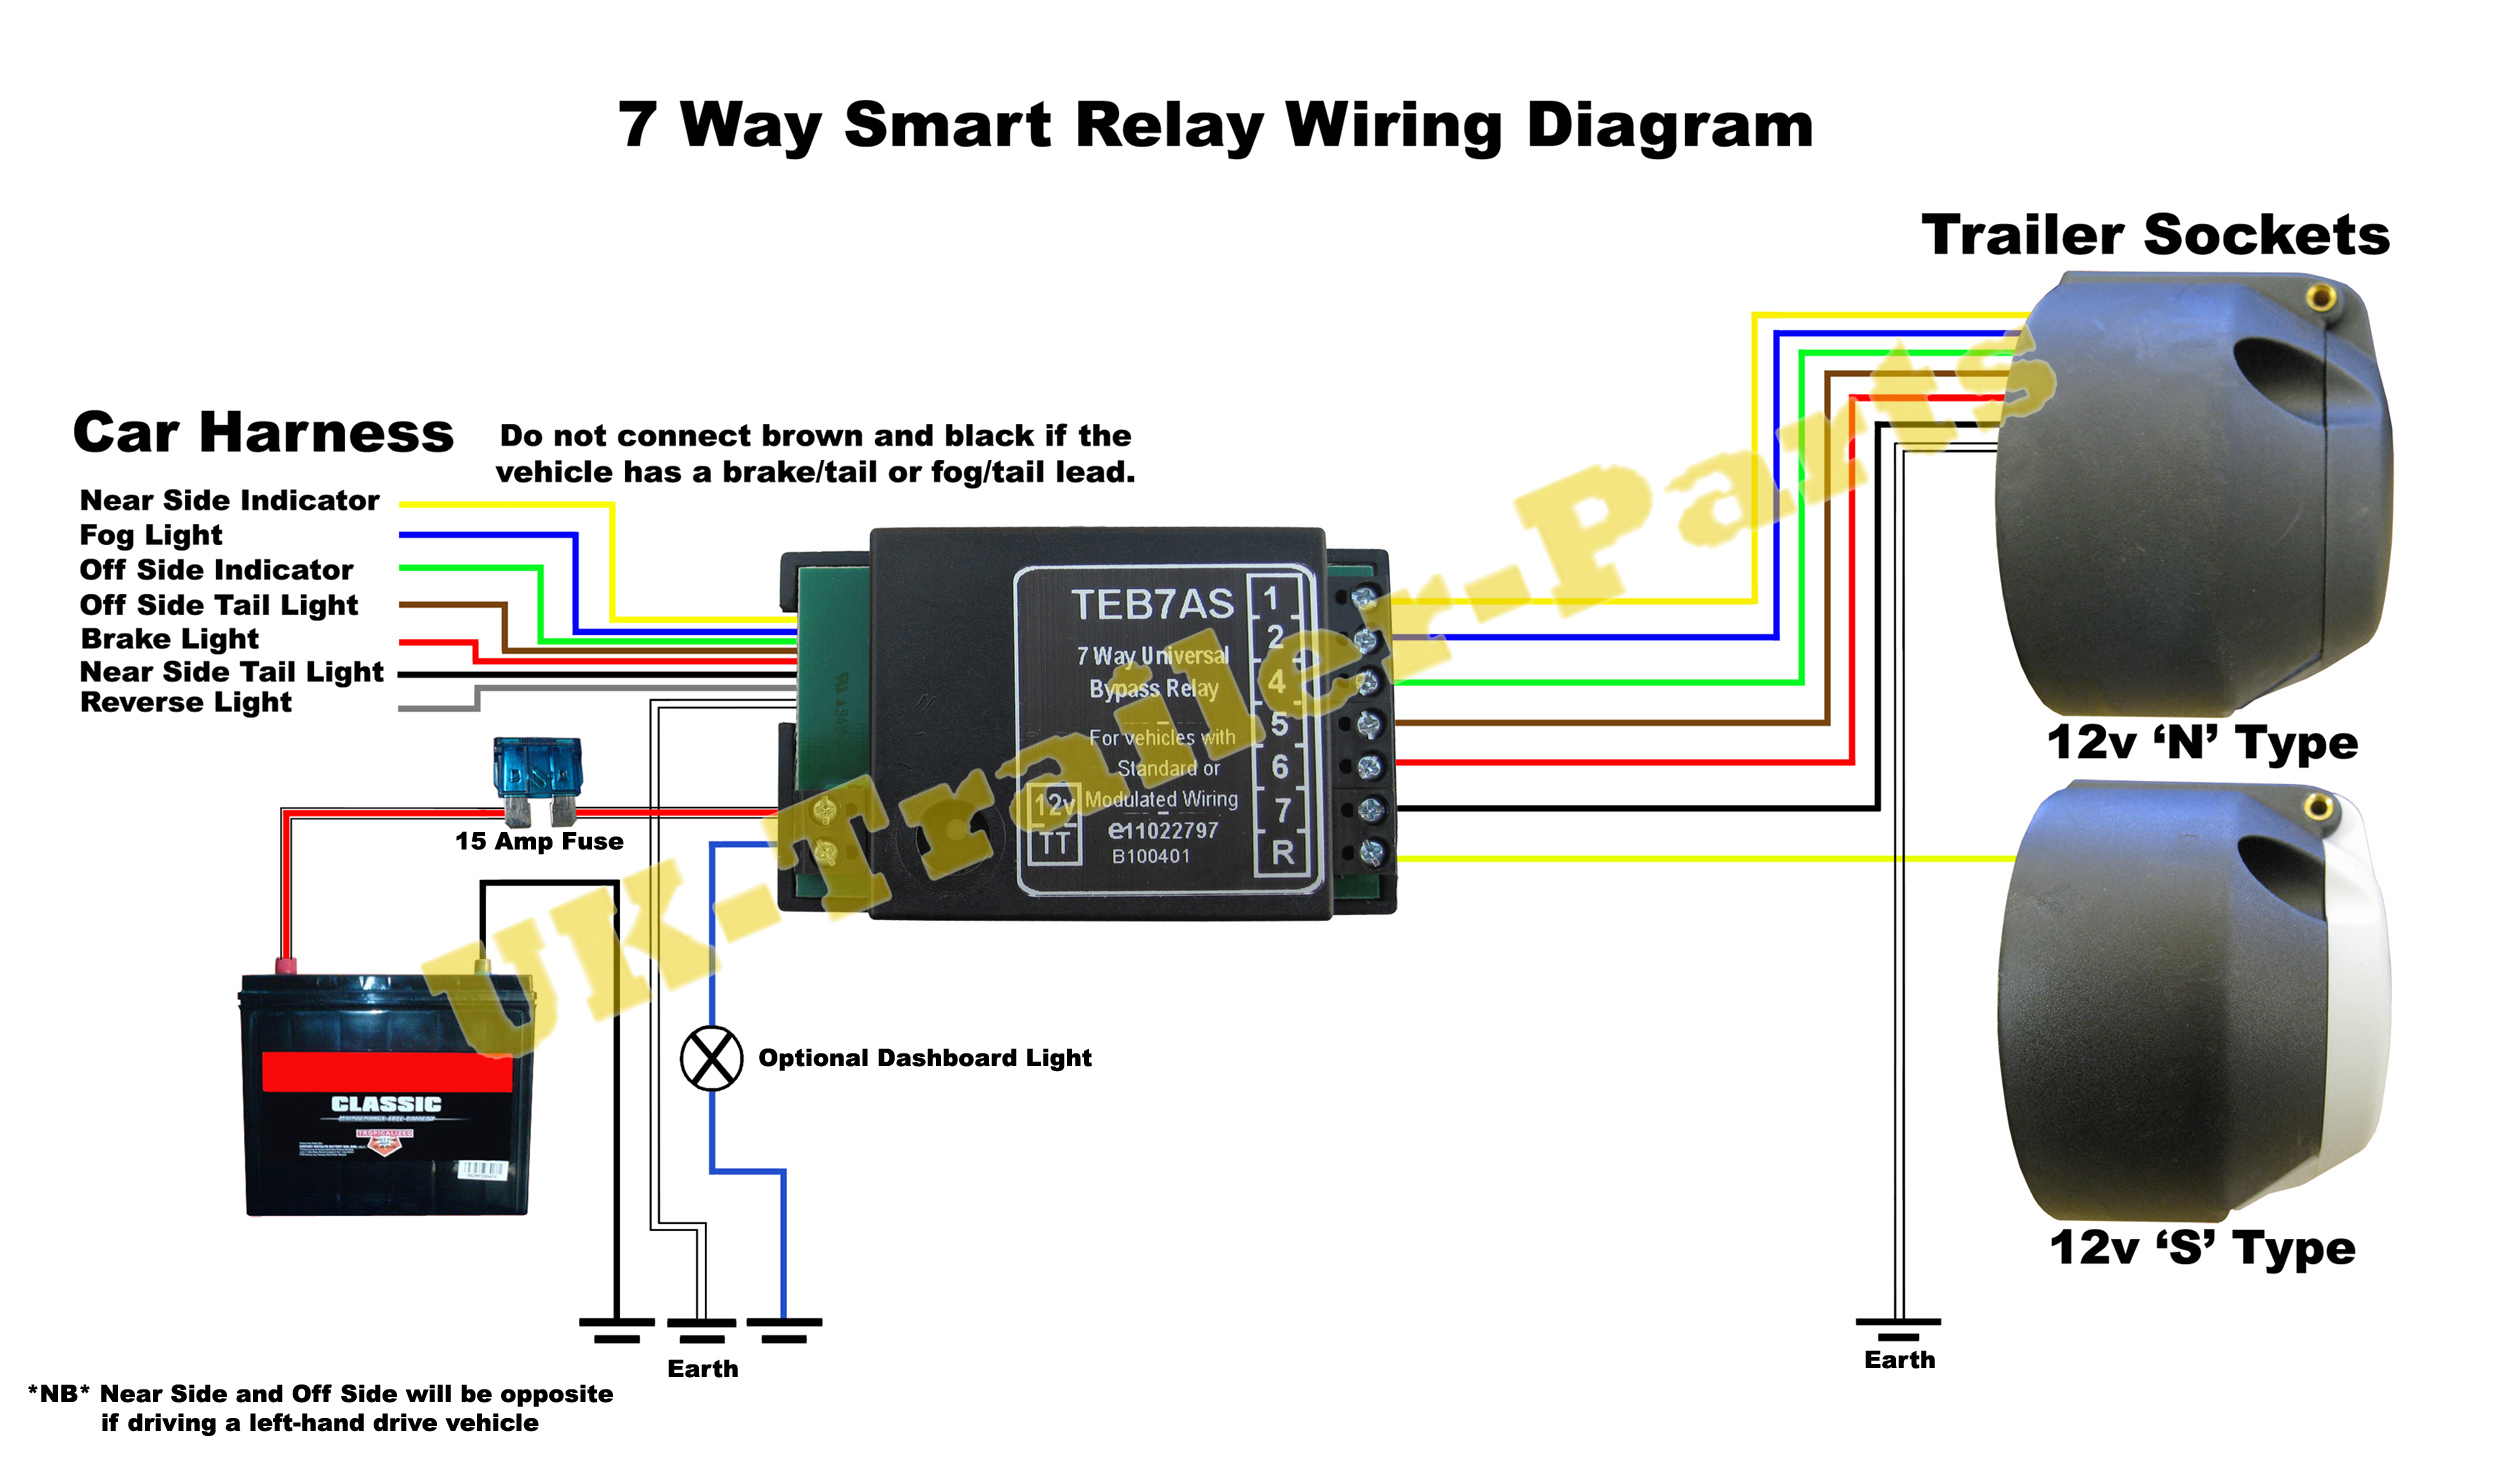 smart relay wiring diagram2 7 way universal bypass relay wiring diagram uk trailer parts vw t5 fog light wiring diagram at gsmx.co